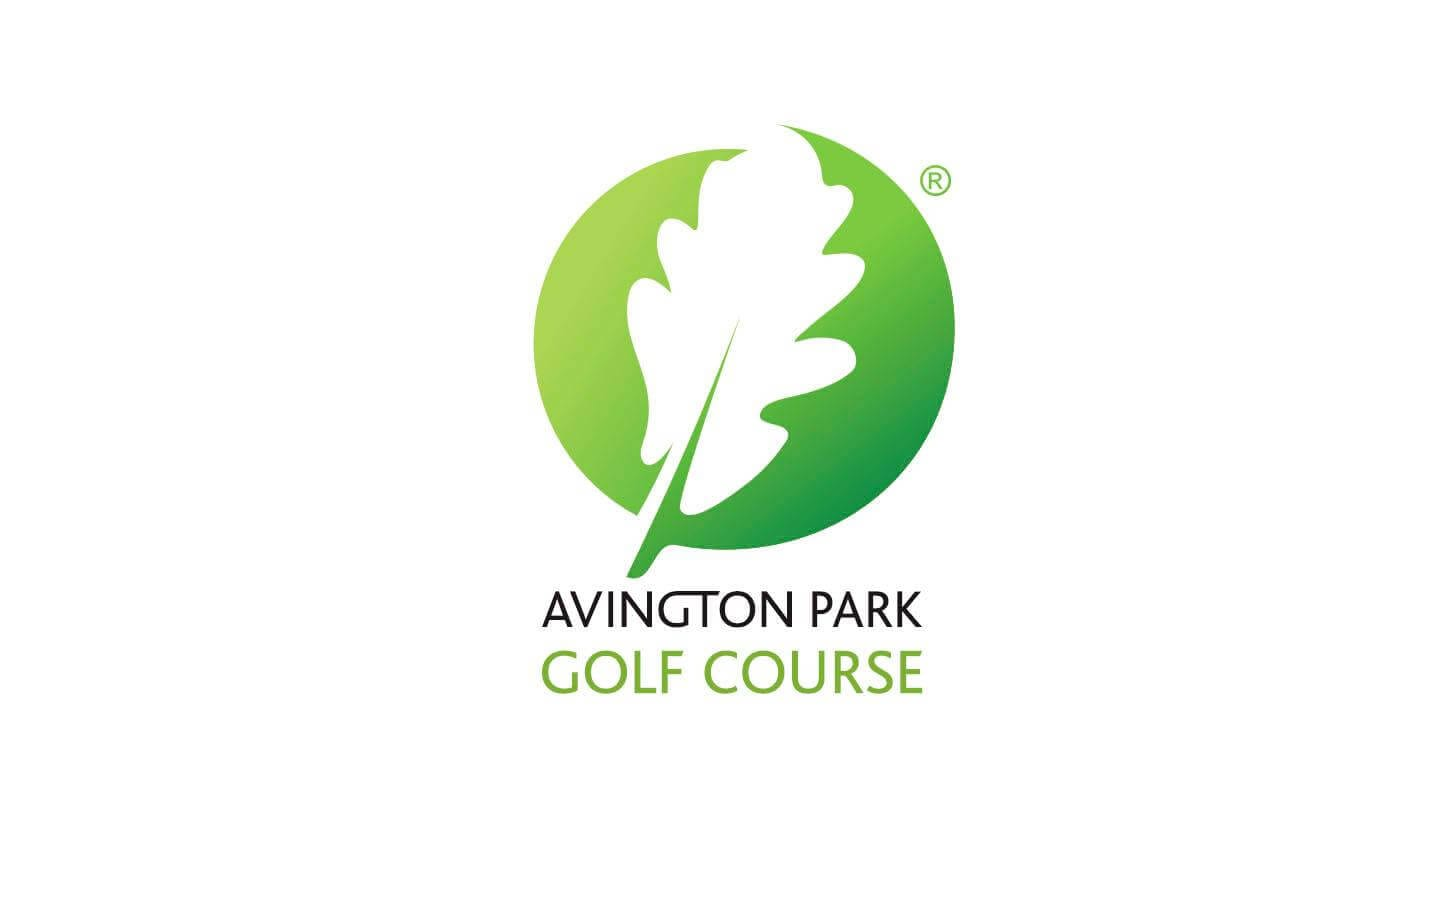 Avington Park Golf Course